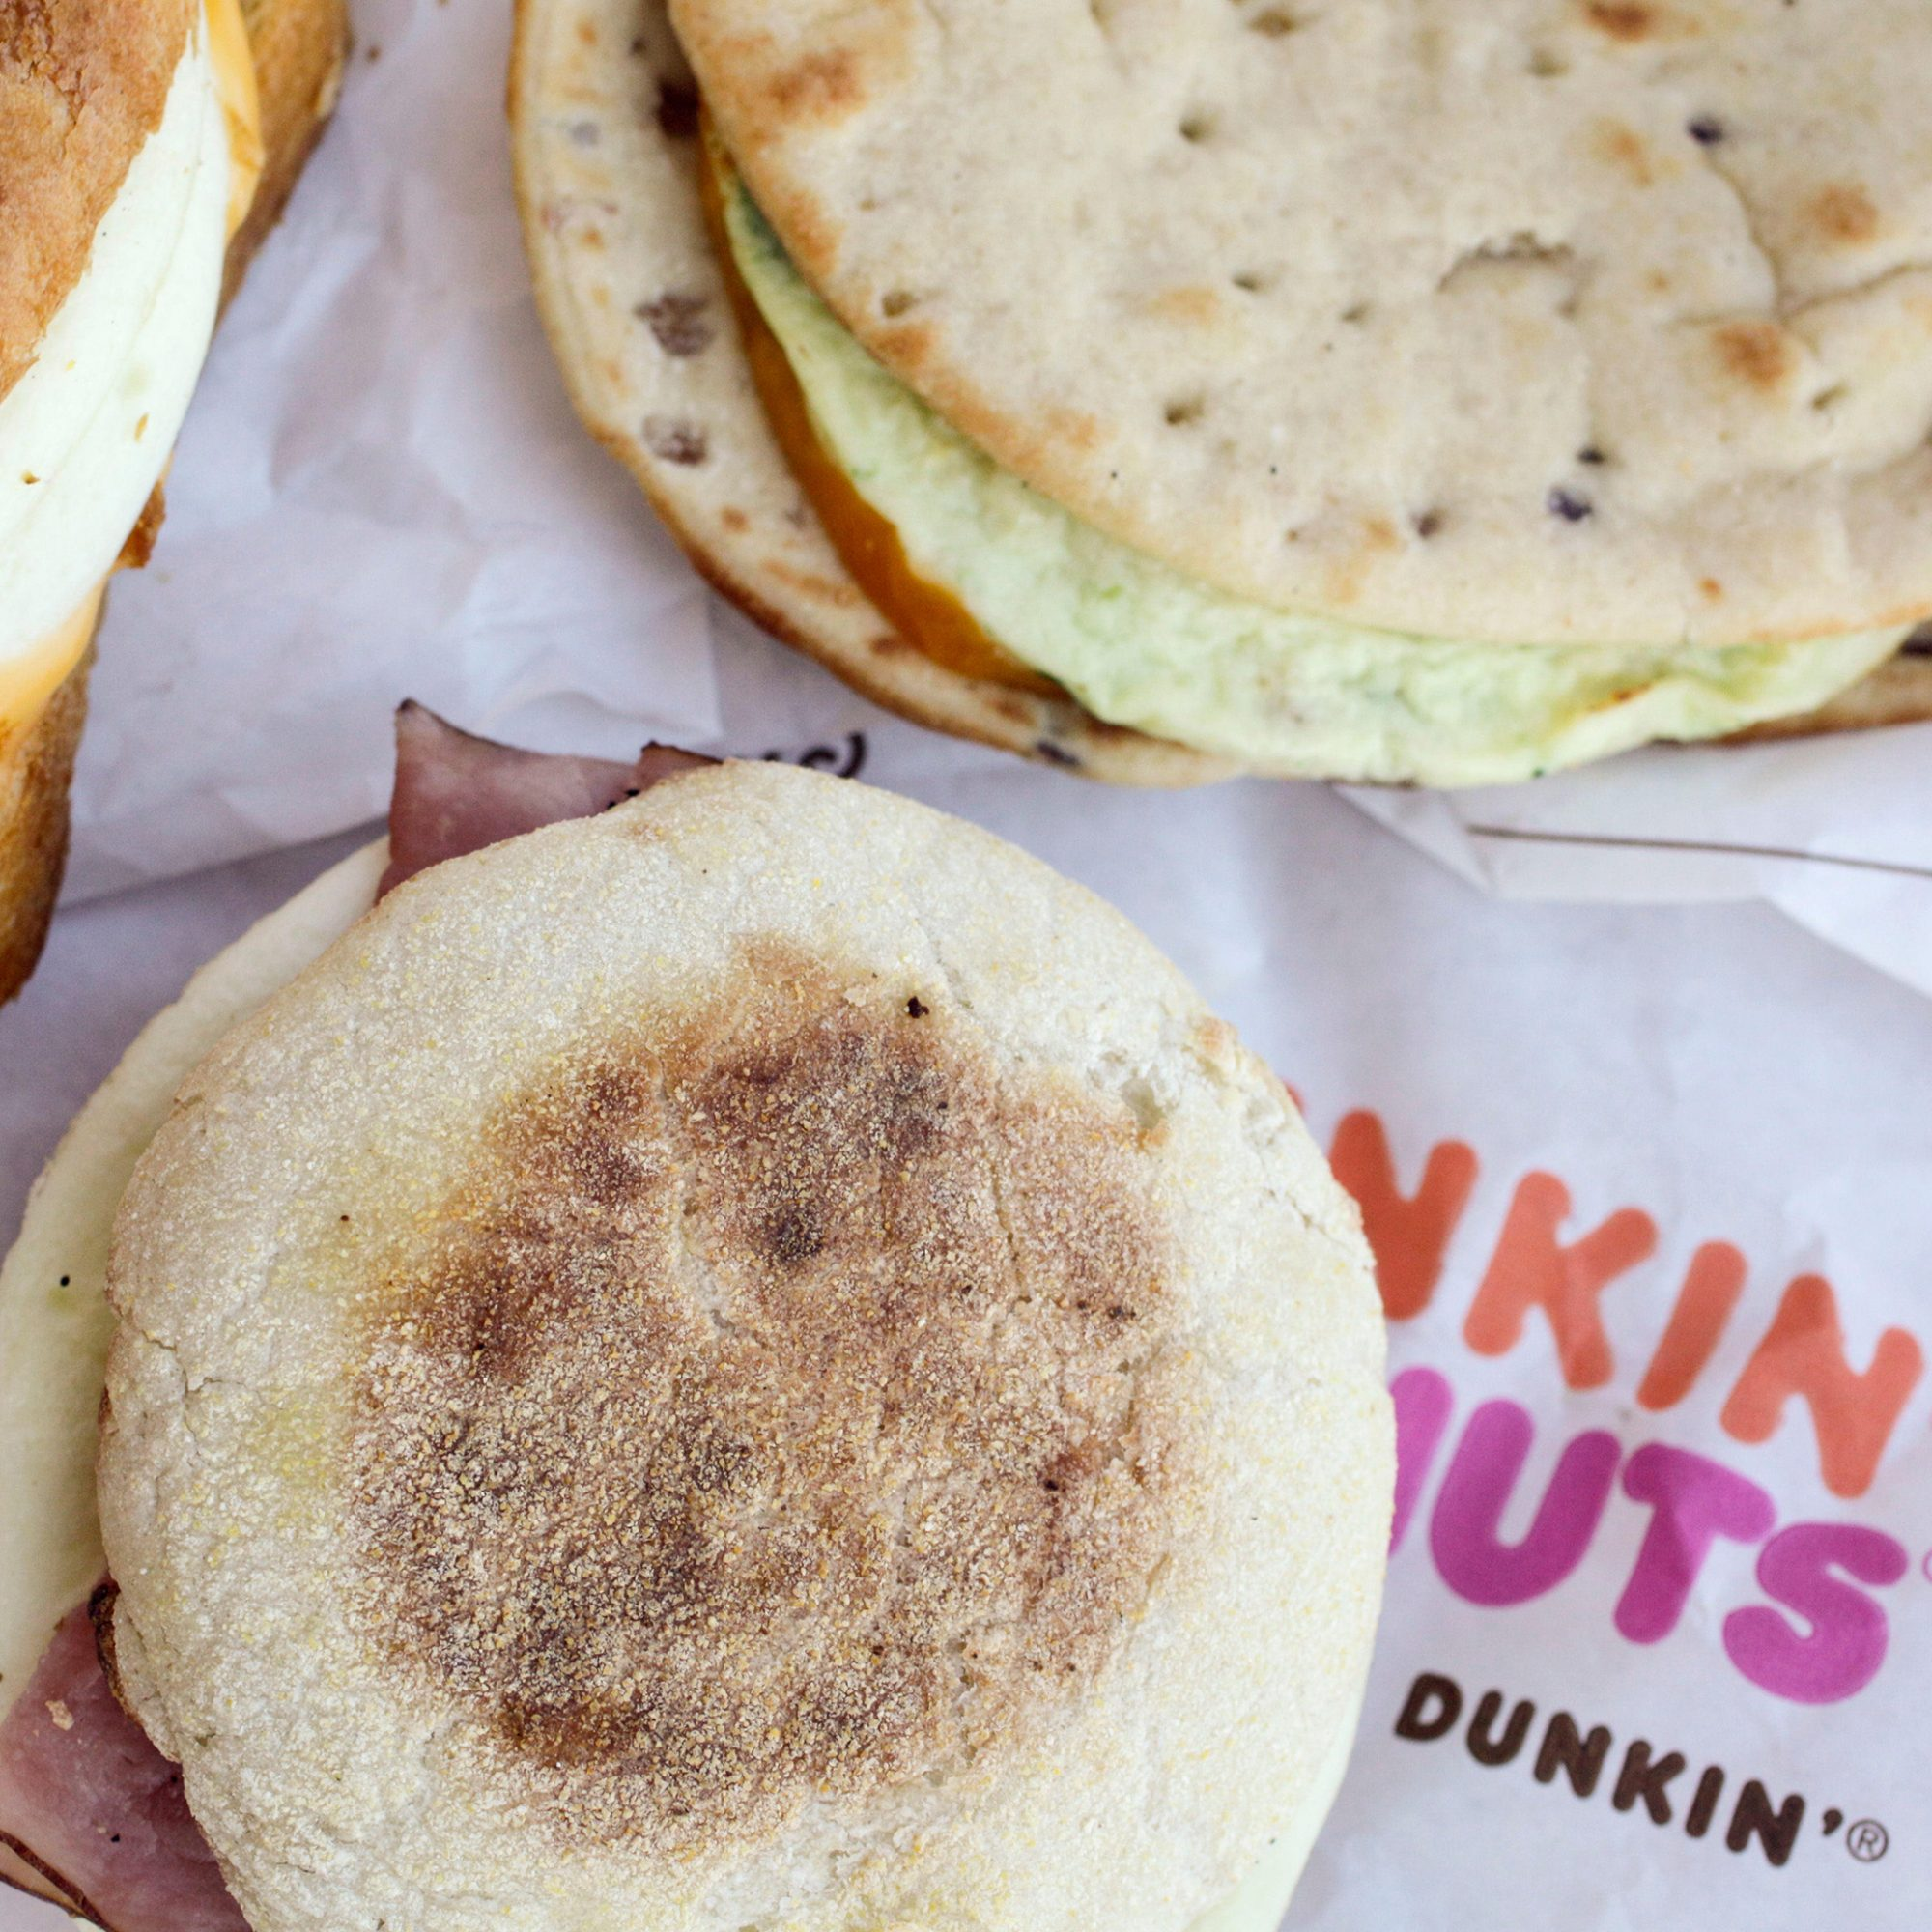 FWX DUNKIN BACON SAUSAGE